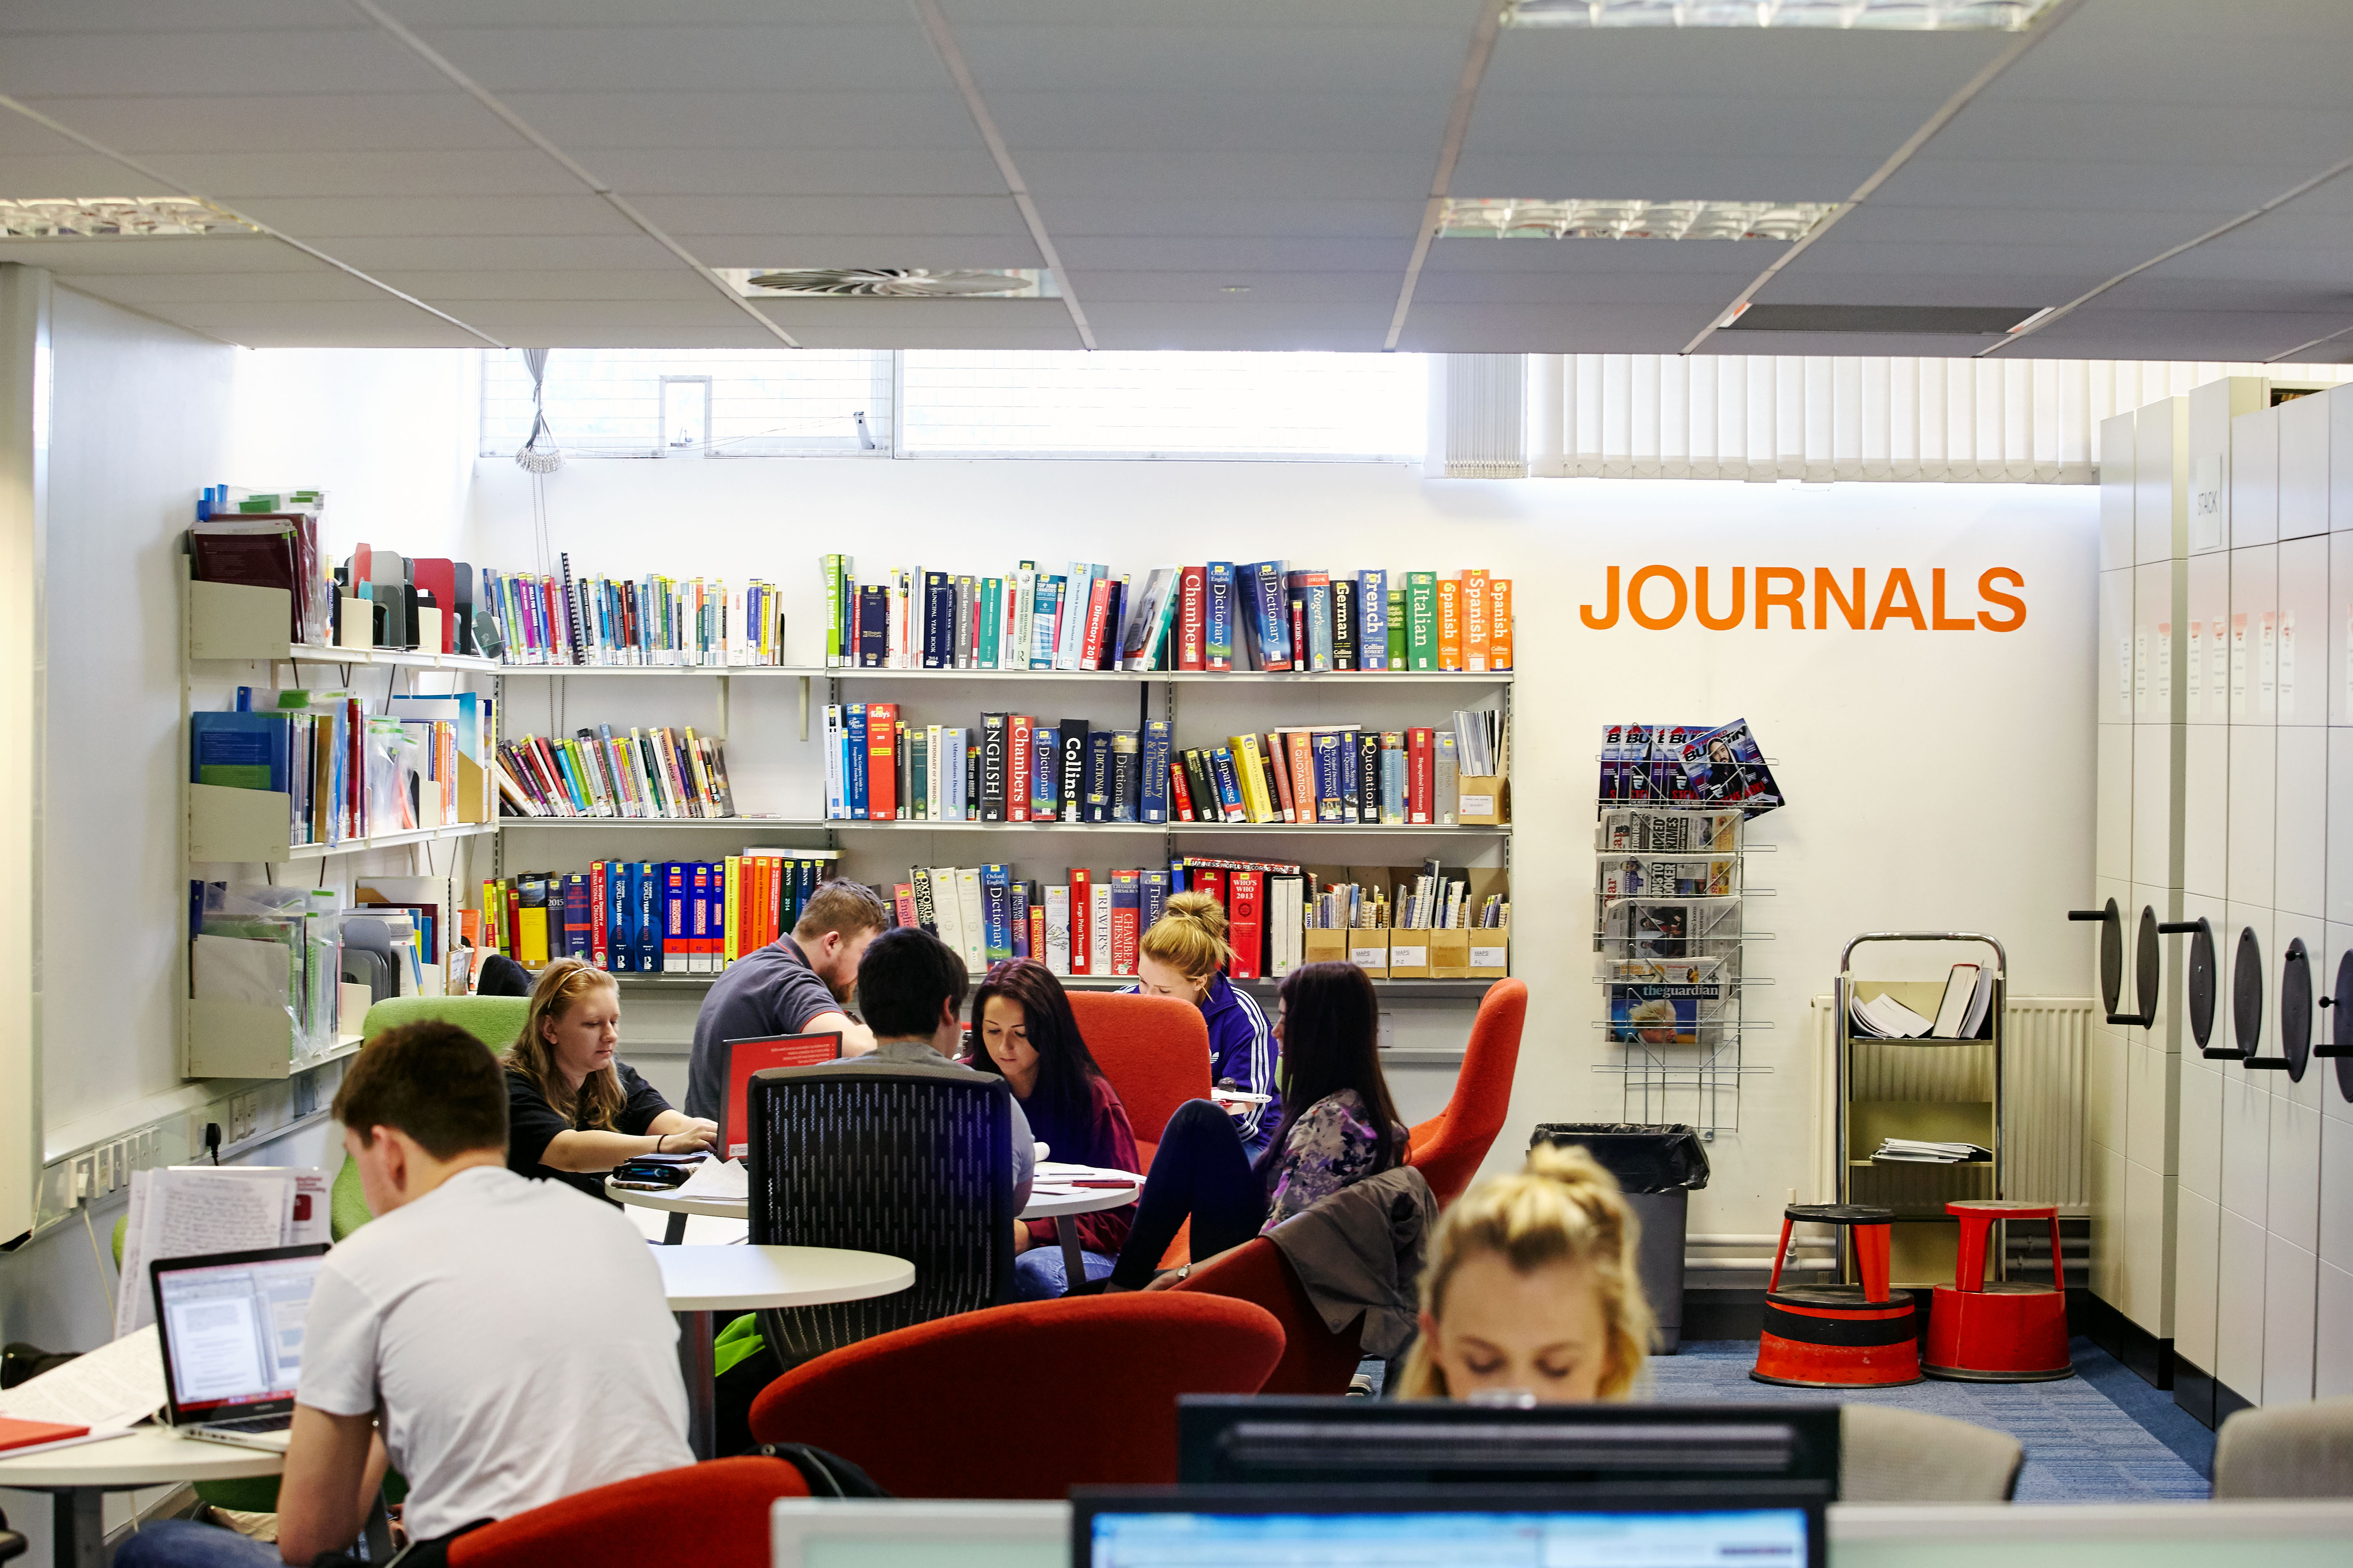 Using SHU Libraries - a Rough Guide